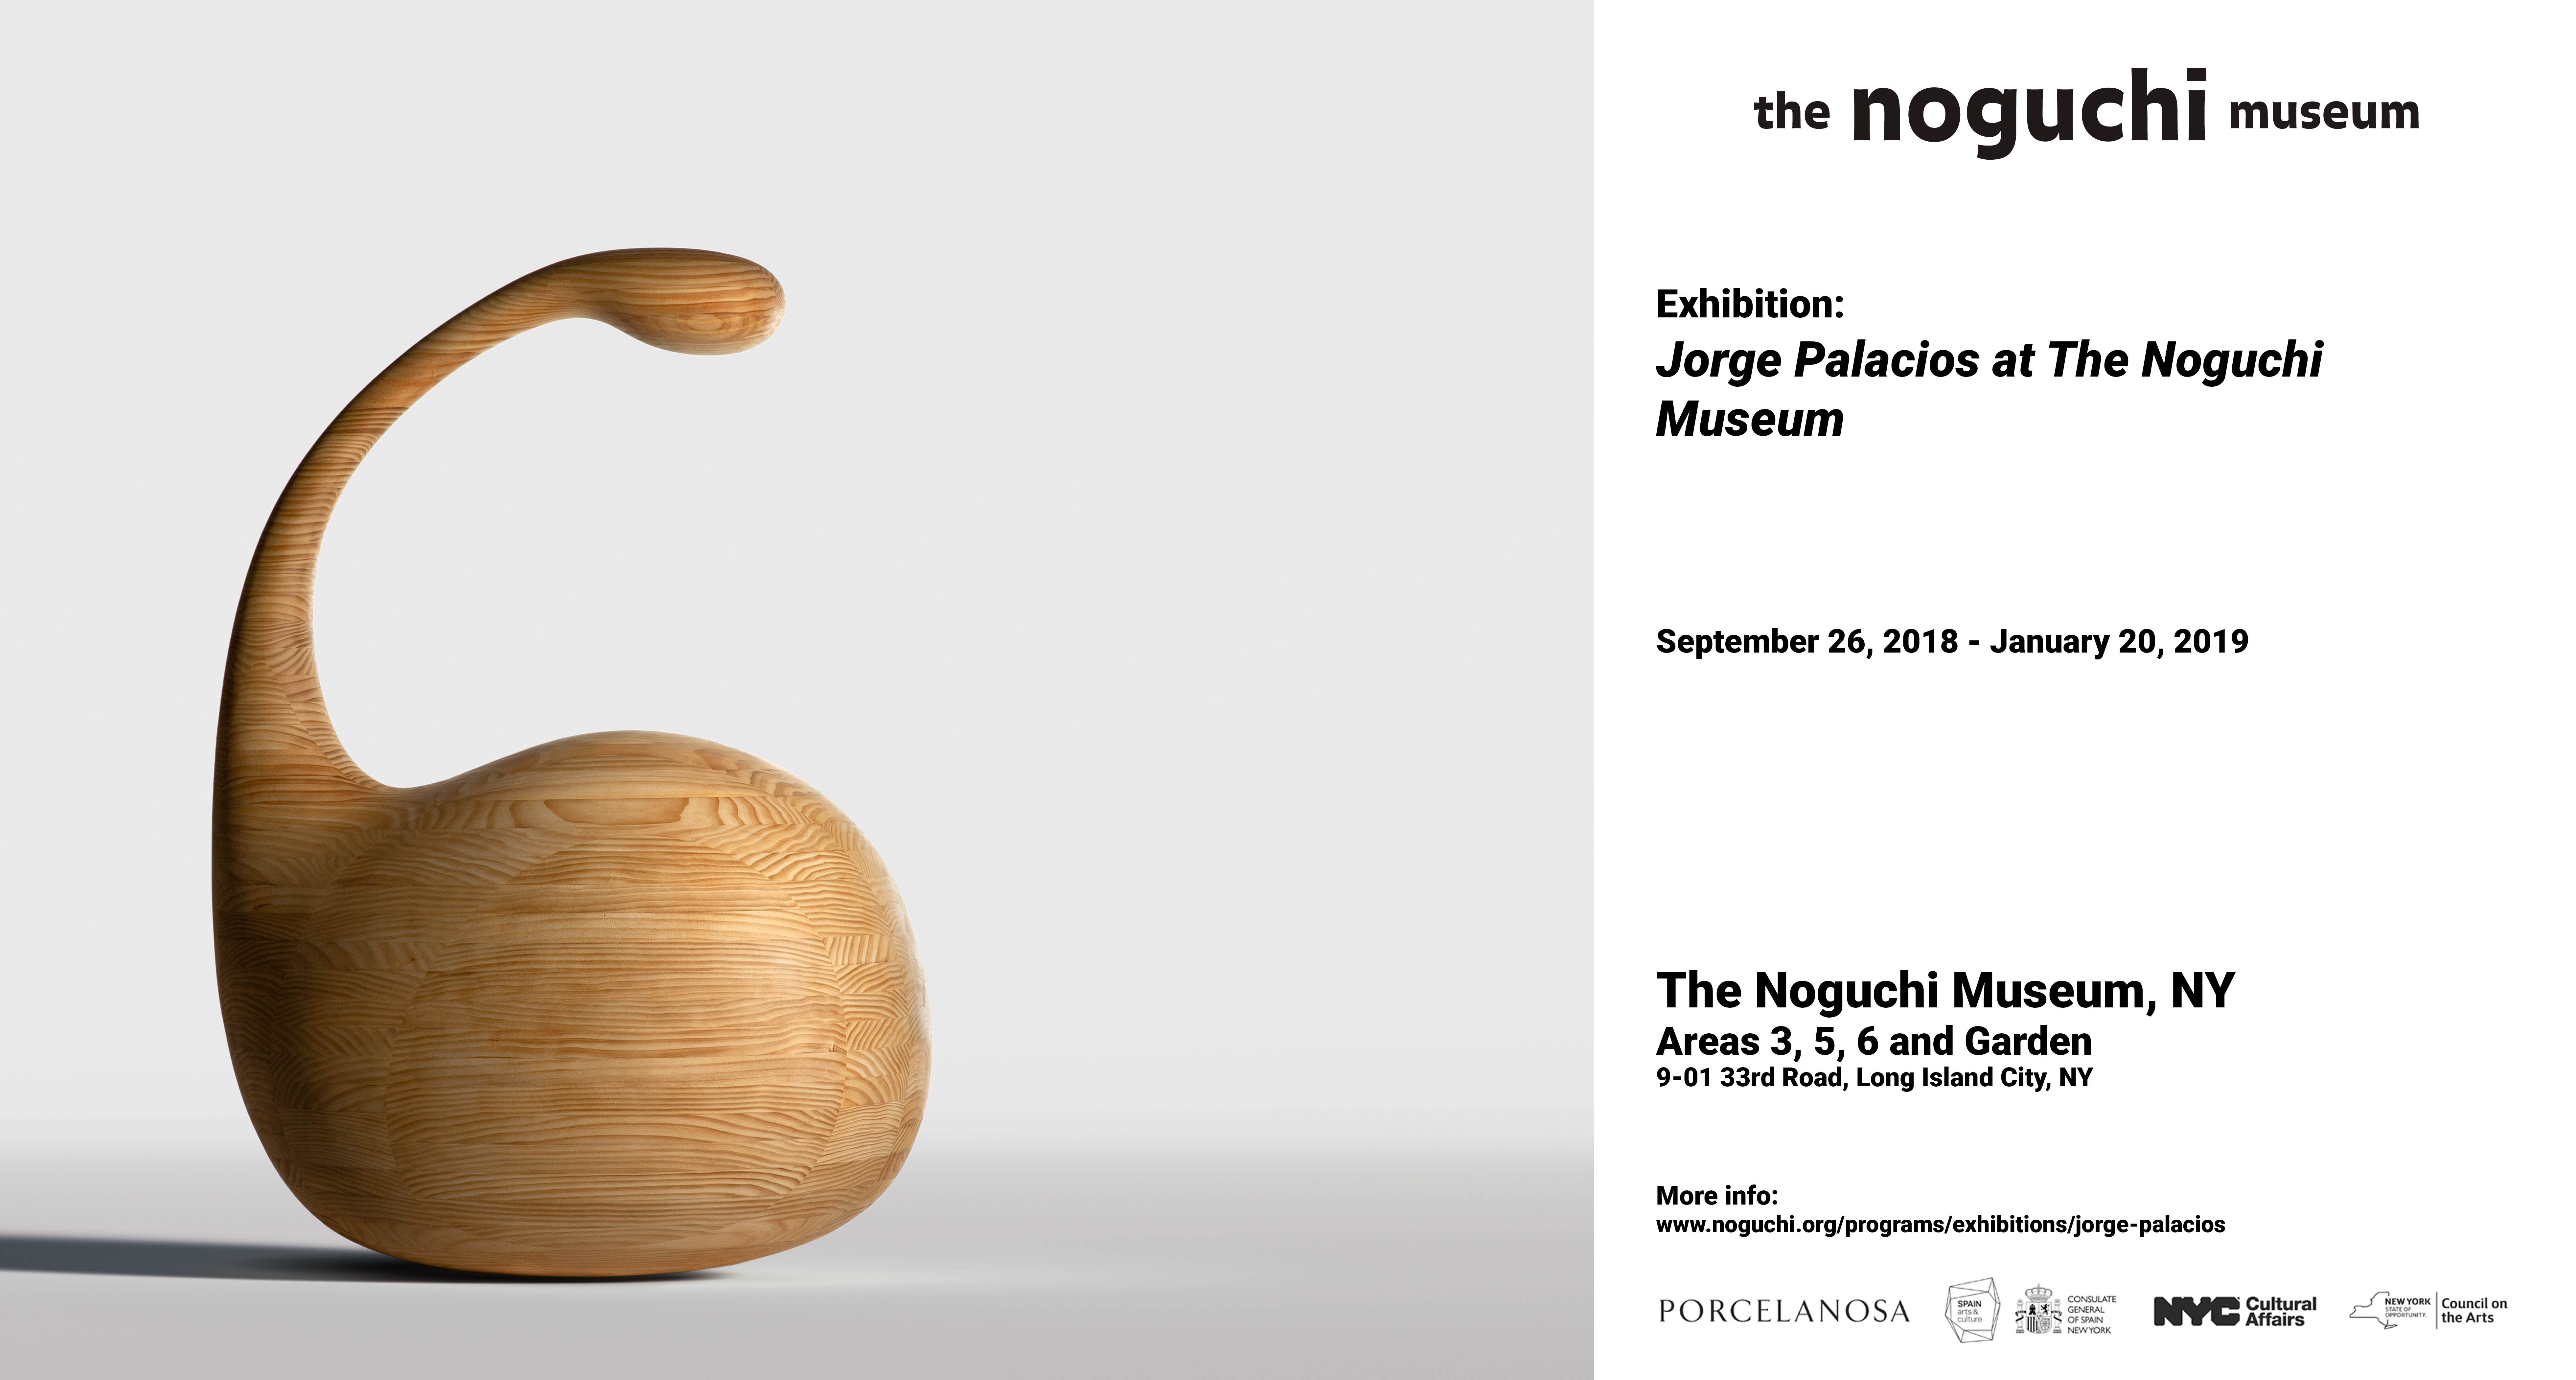 Exhibition Jorge Palacios at The Noguchi Museum, New York